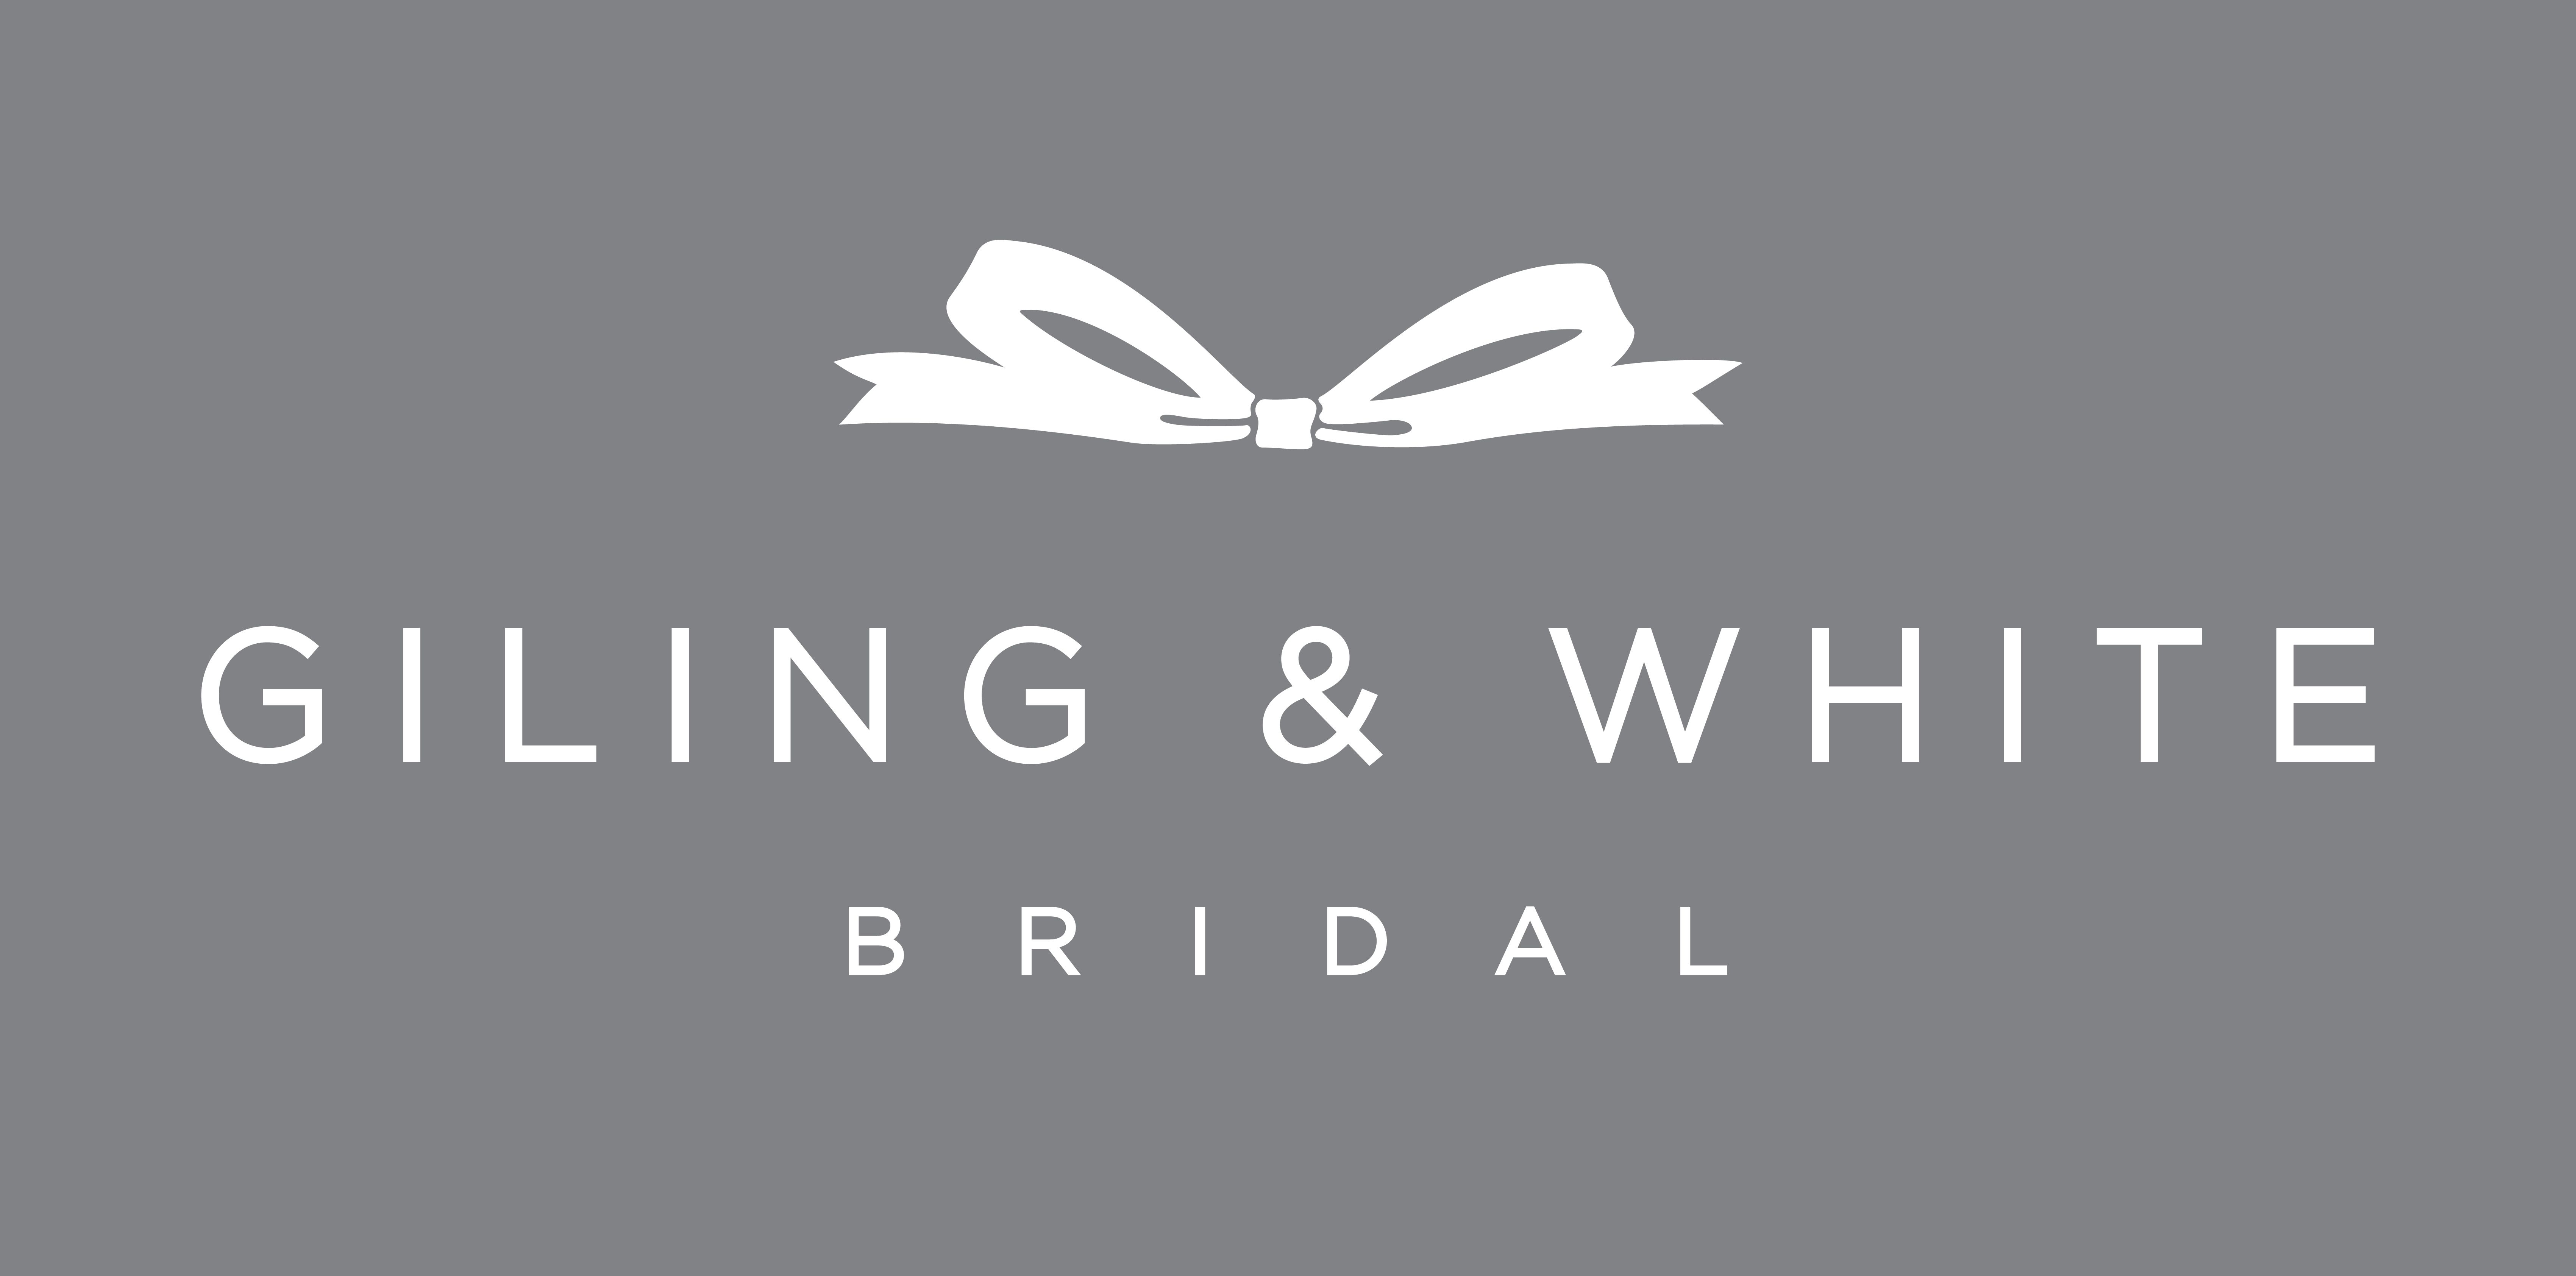 We are a luxurious new bridal boutique offering one of the most outstanding collections of designer wedding dresses in Leicestershire.